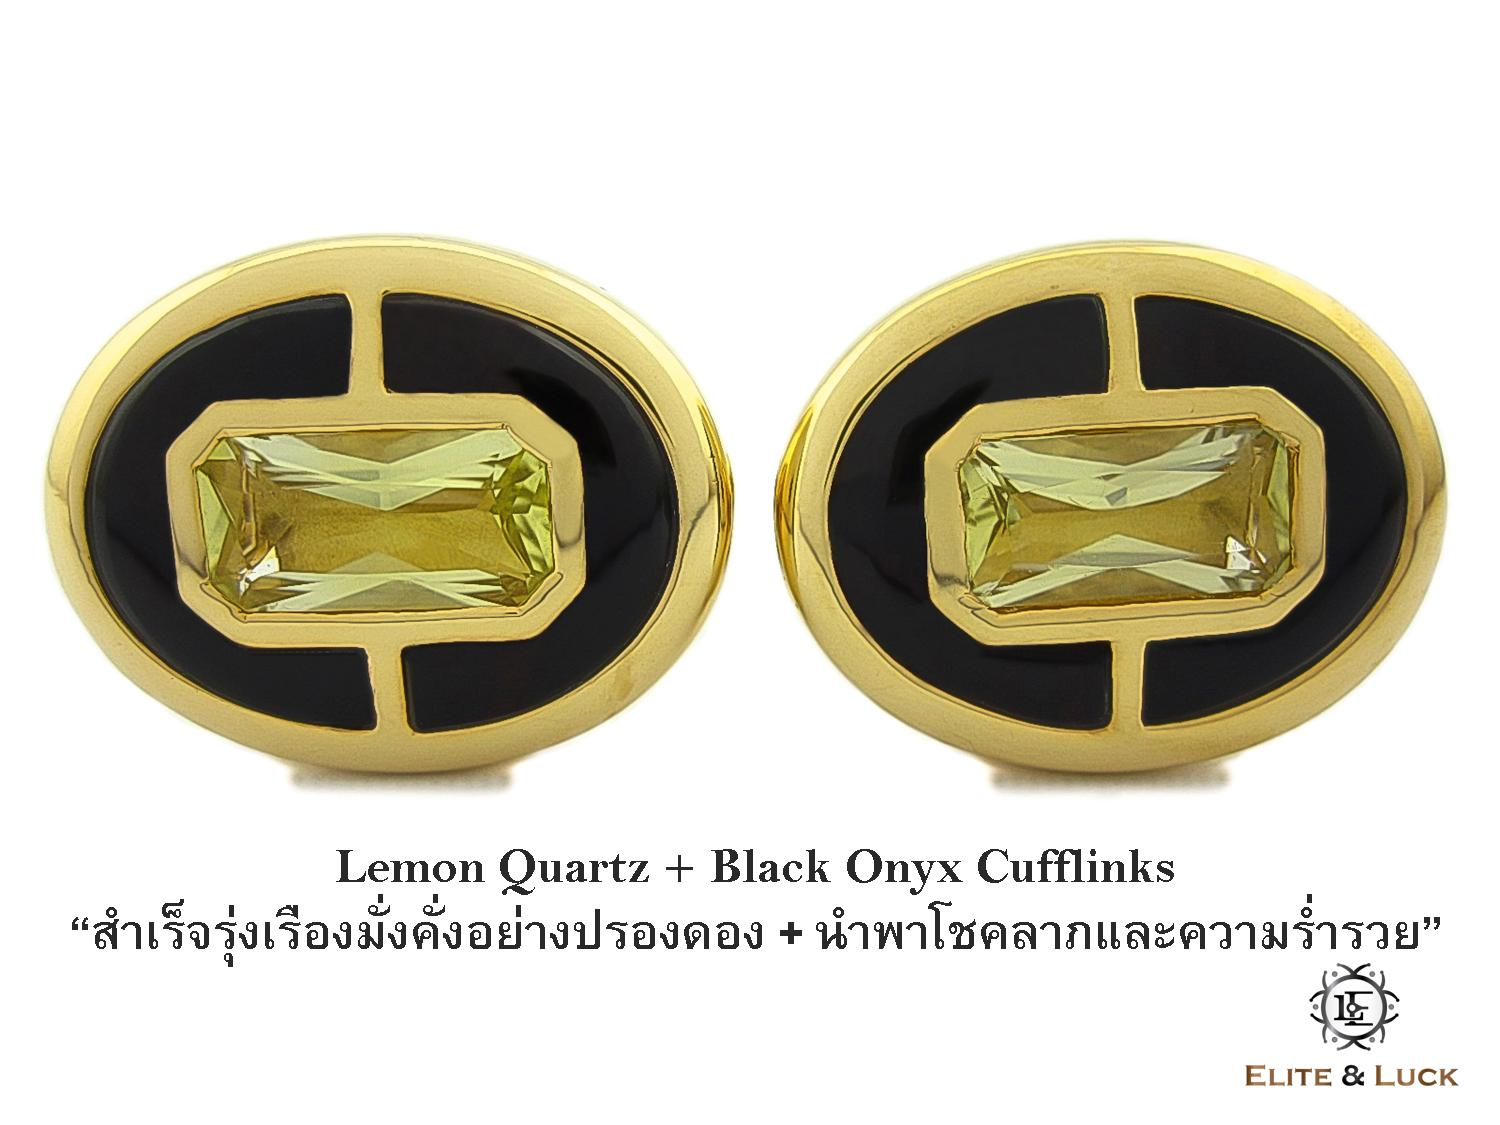 Lemon Quartz + Black Onyx Sterling Silver Cufflinks สี 18K Yellow Gold รุ่น Prestige